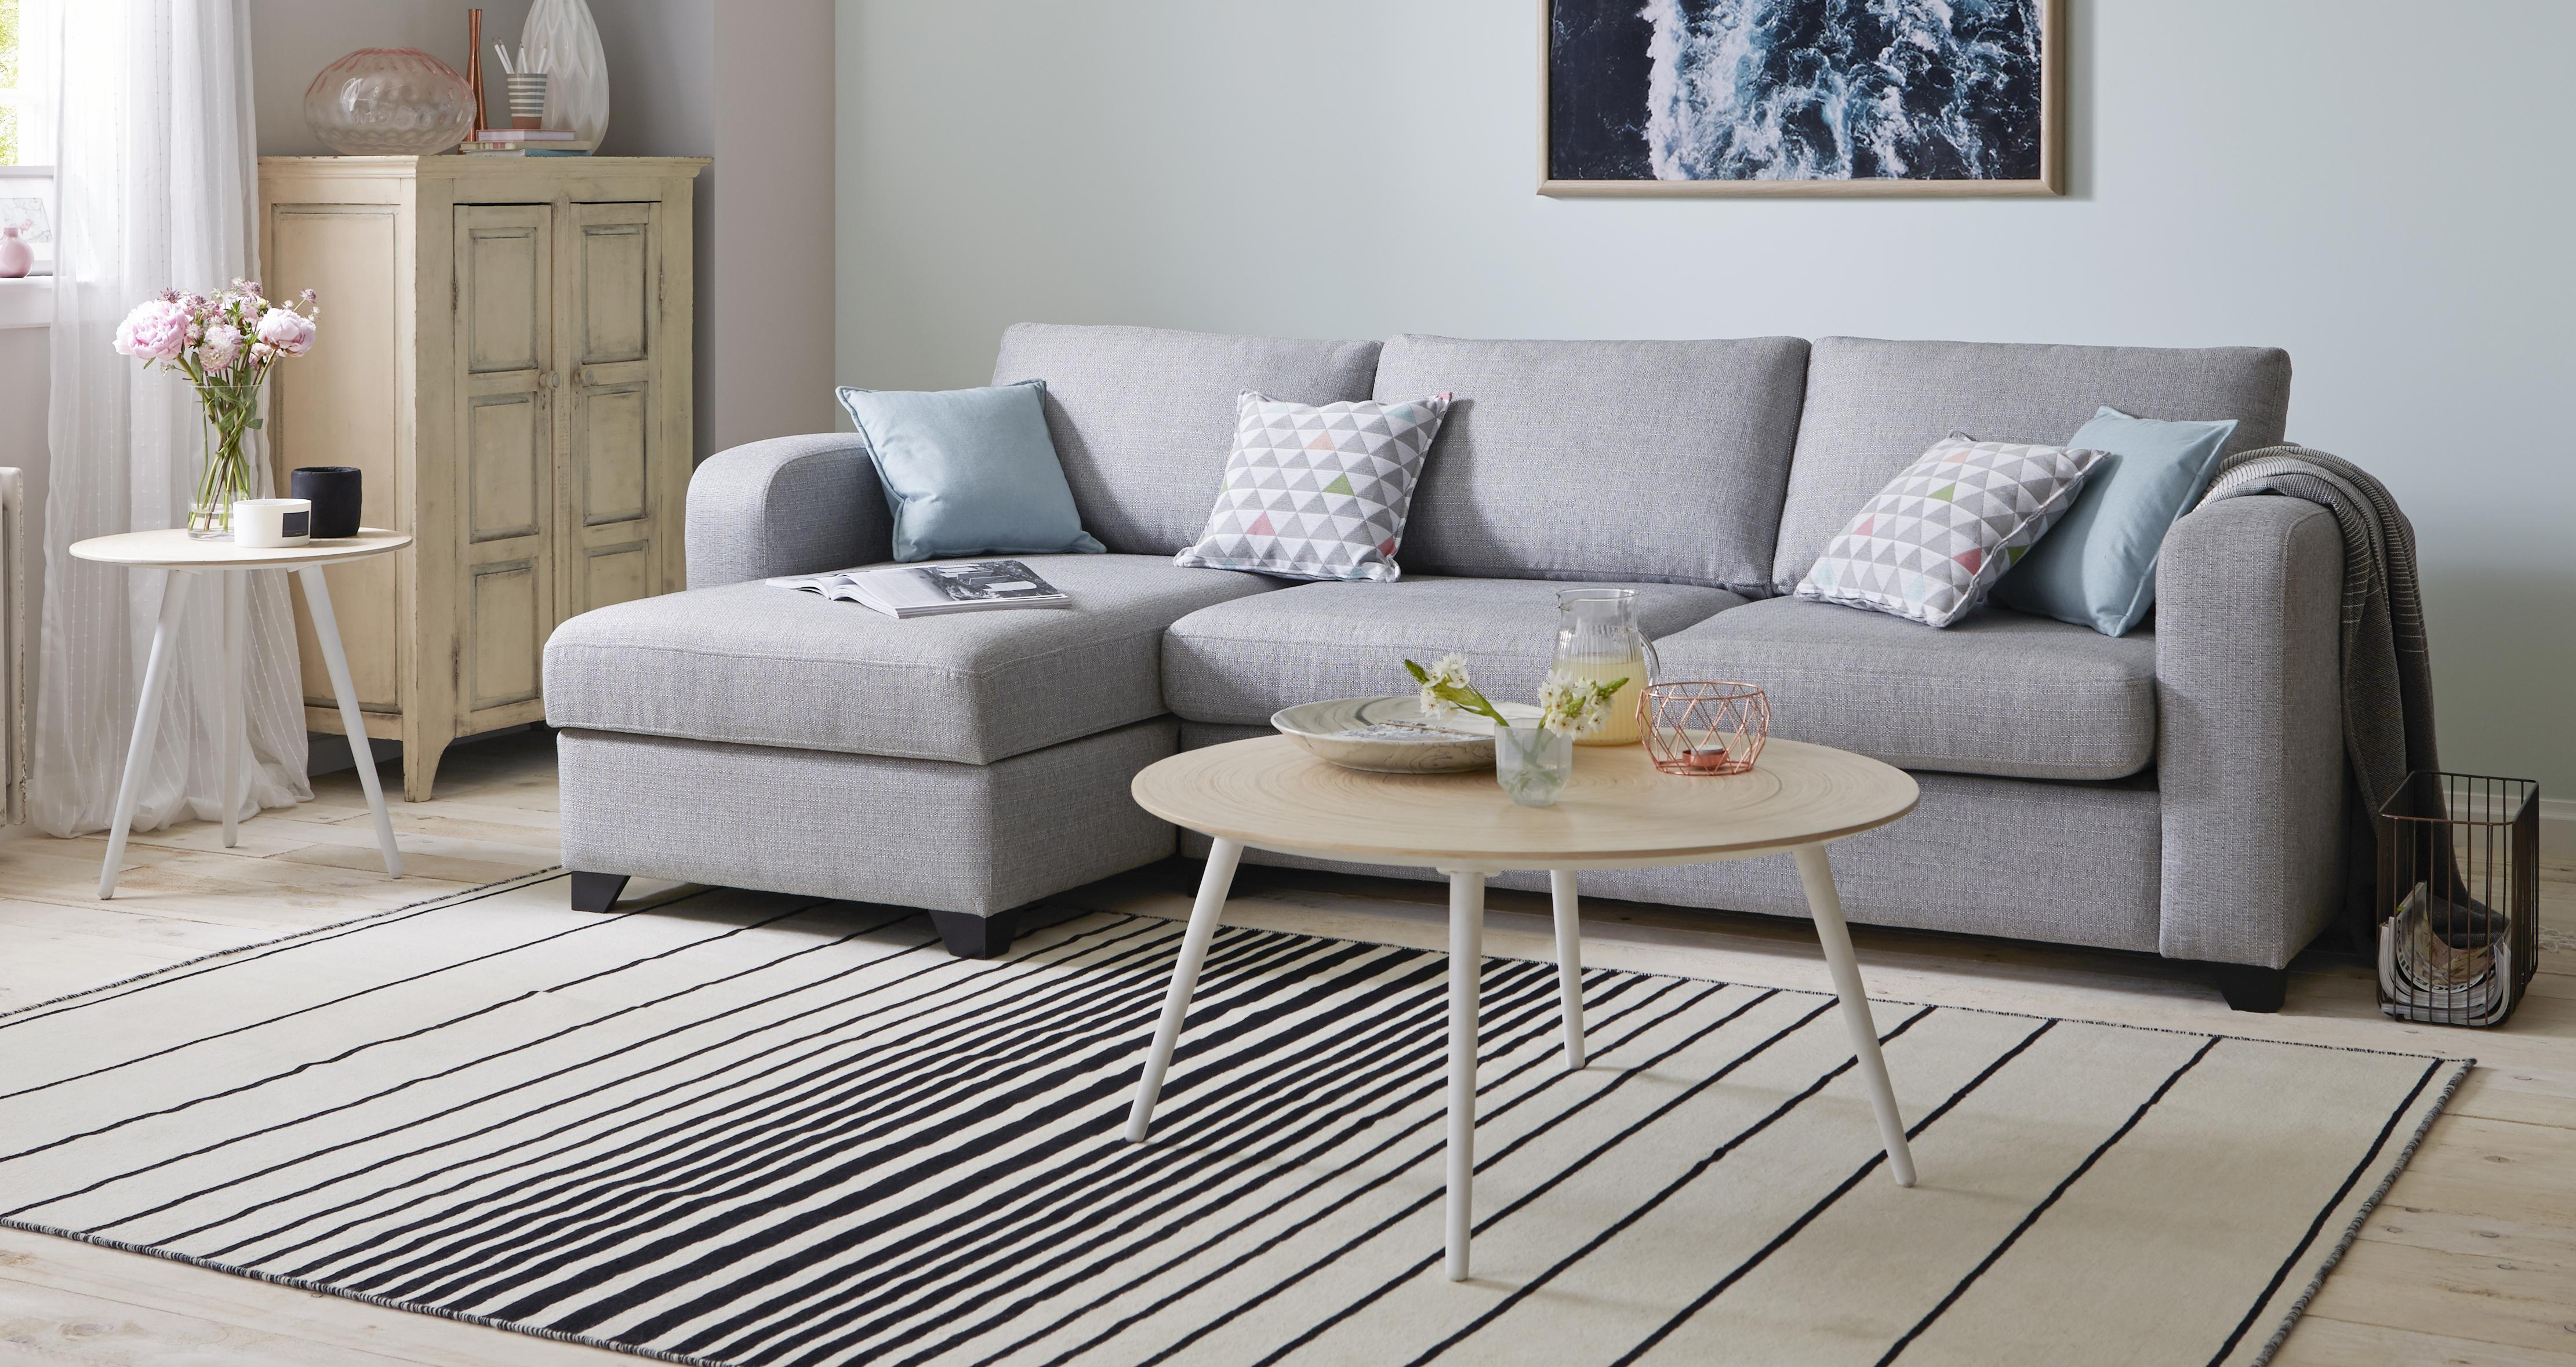 modular sofas ireland brushed steel sofa legs dfs what are the benefits of a